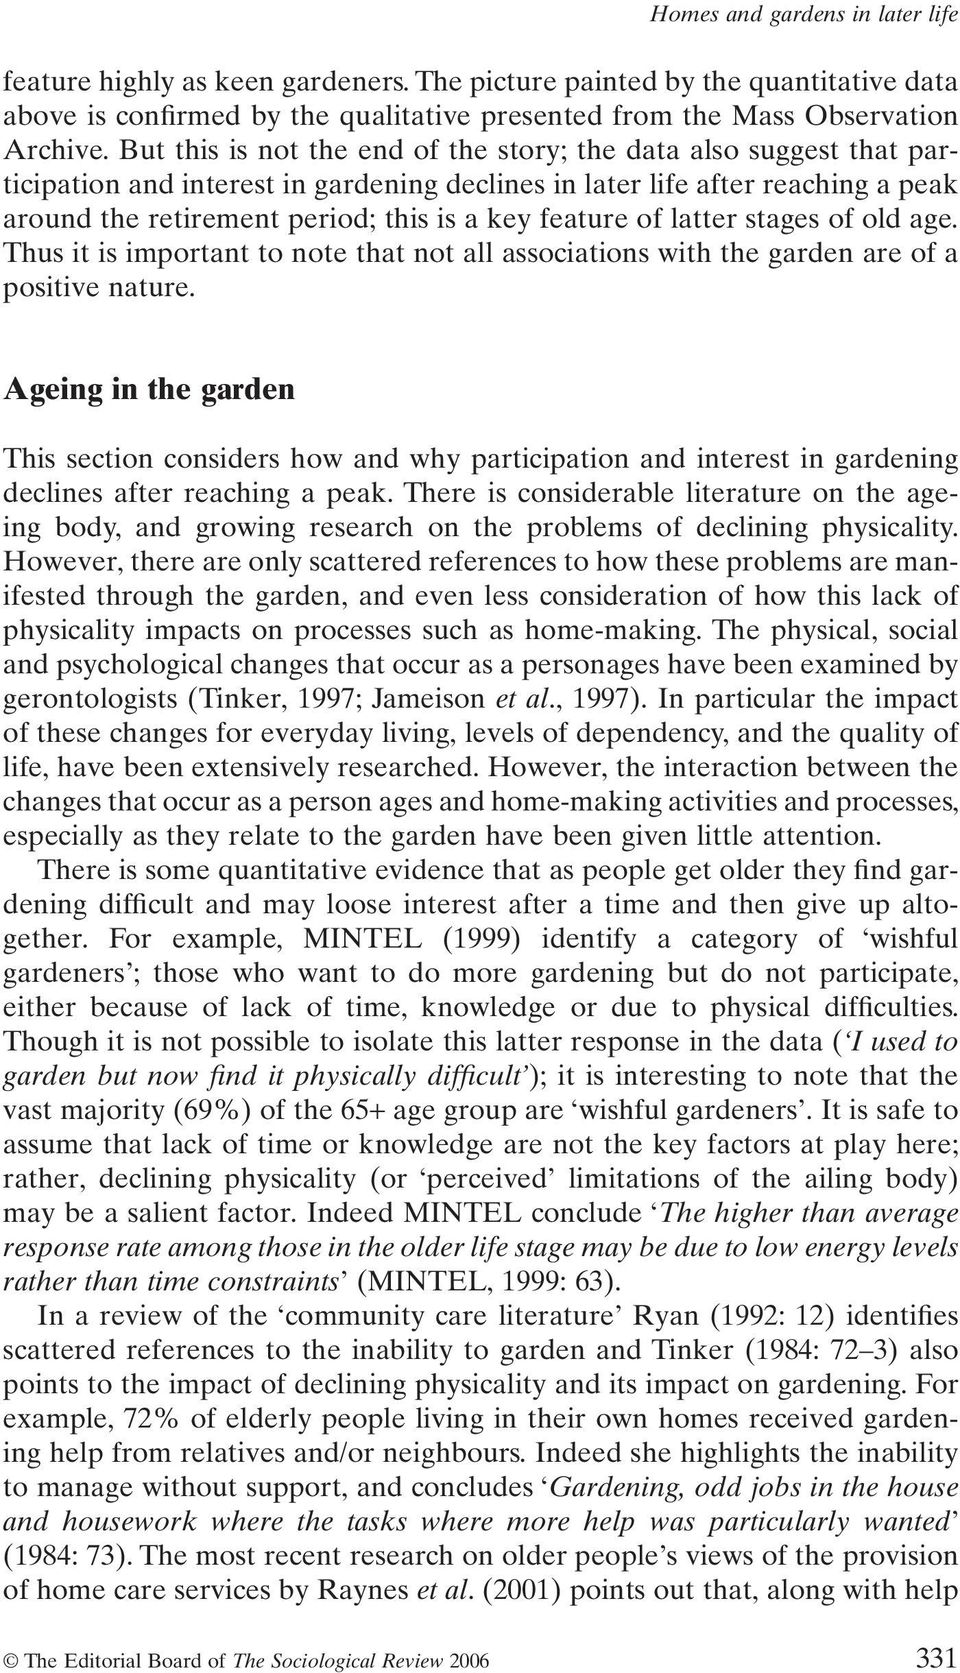 feature of latter stages of old age. Thus it is important to note that not all associations with the garden are of a positive nature.